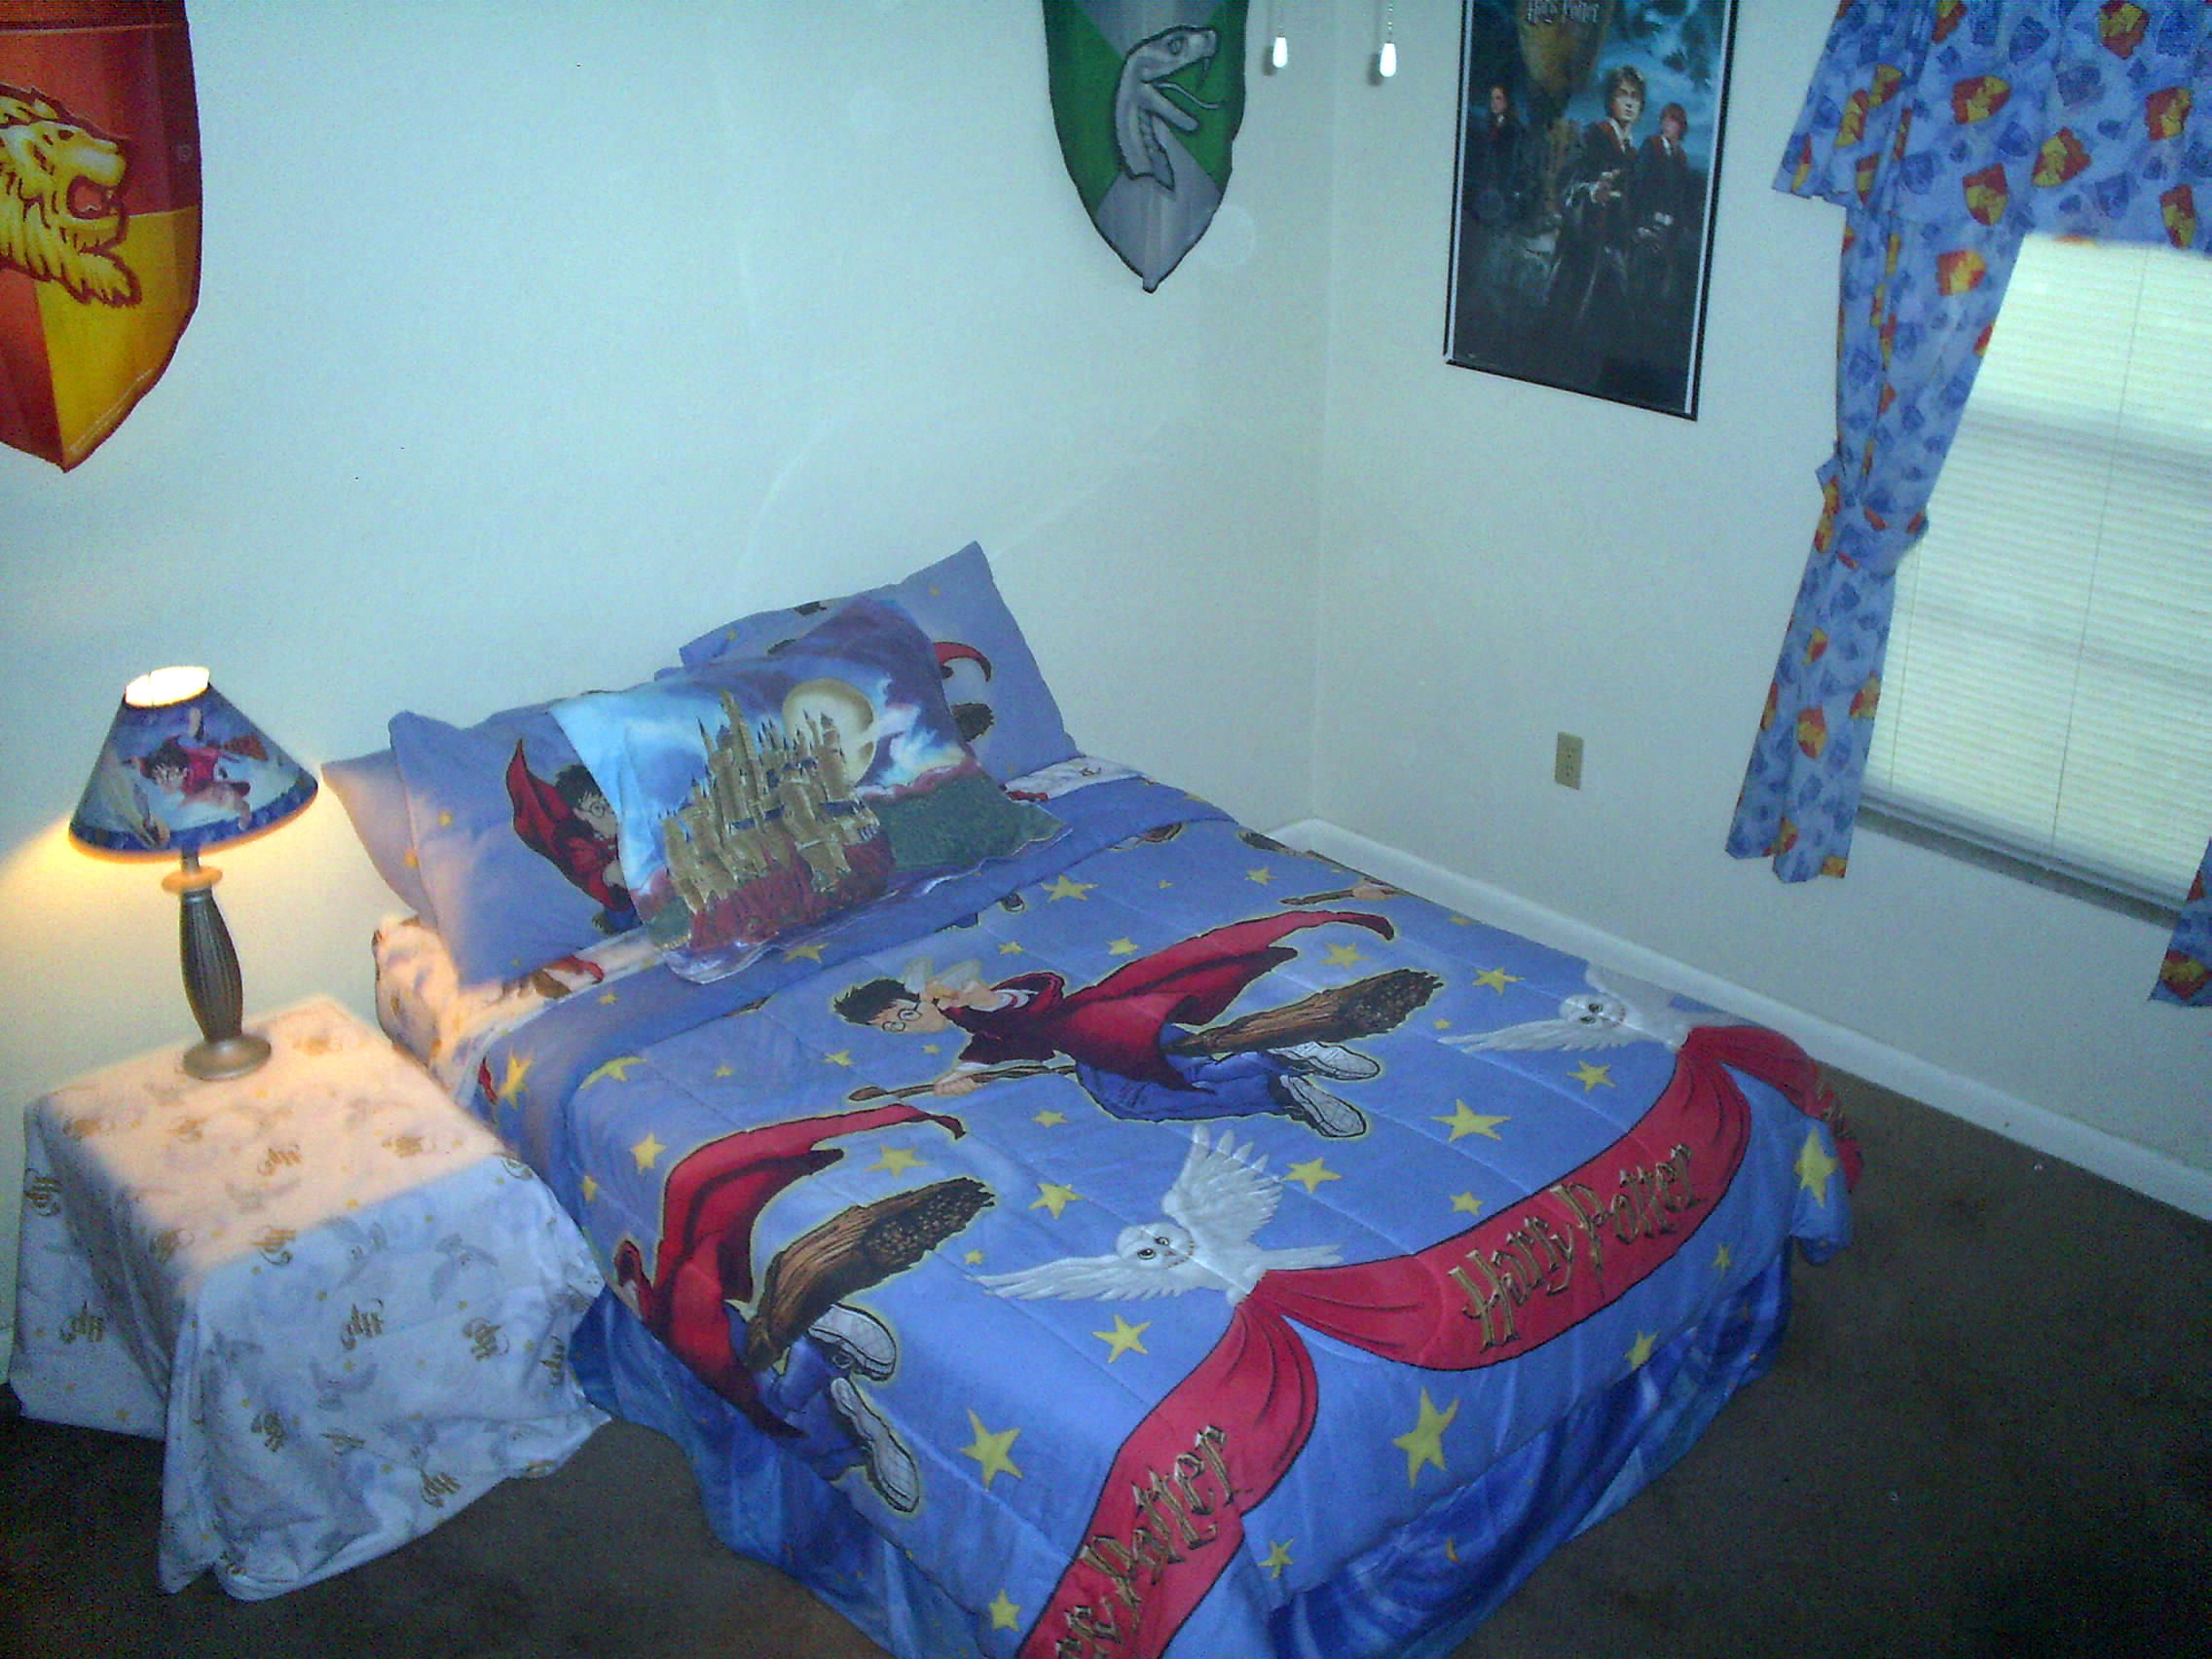 Harry Potter Bedroom Print Photos View Full Size Image